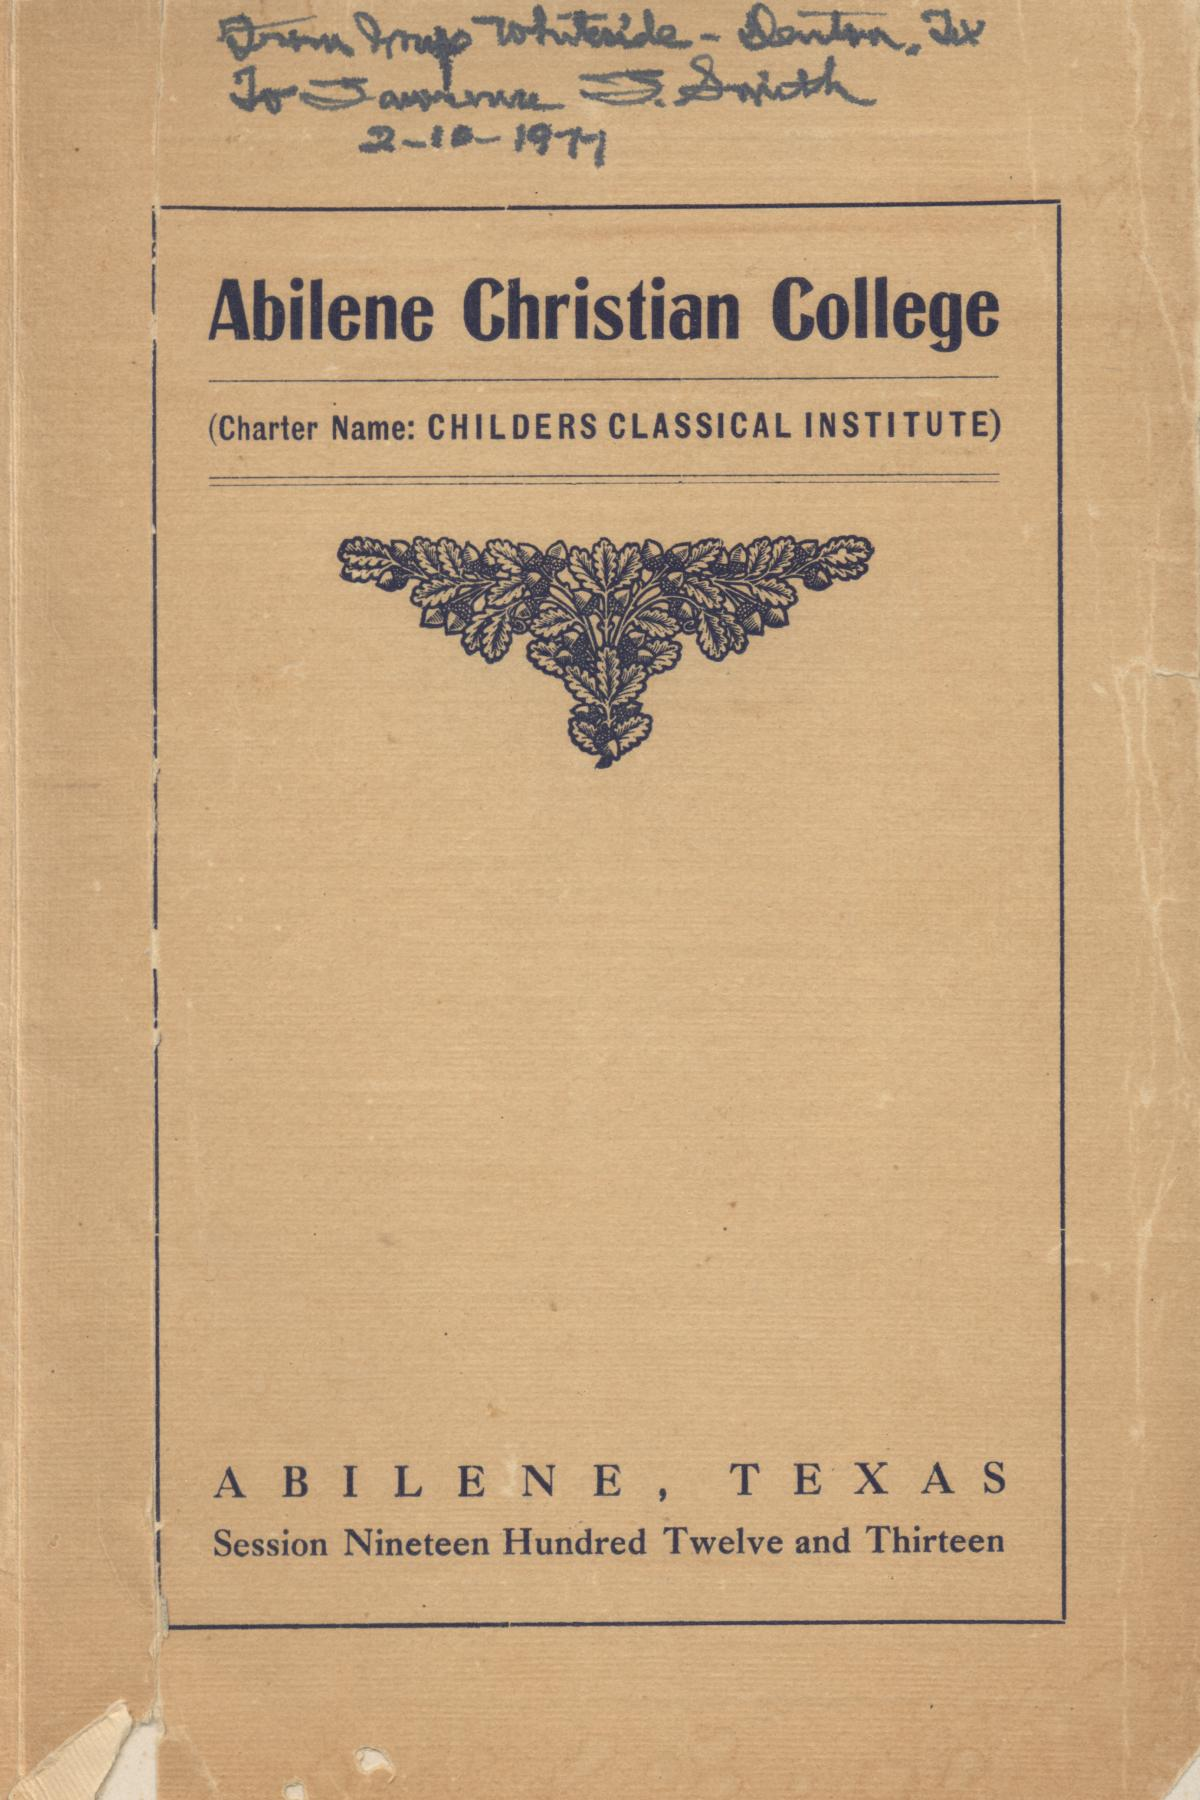 Catalog of Abilene Christian College, 1912-1913                                                                                                      [Sequence #]: 1 of 68